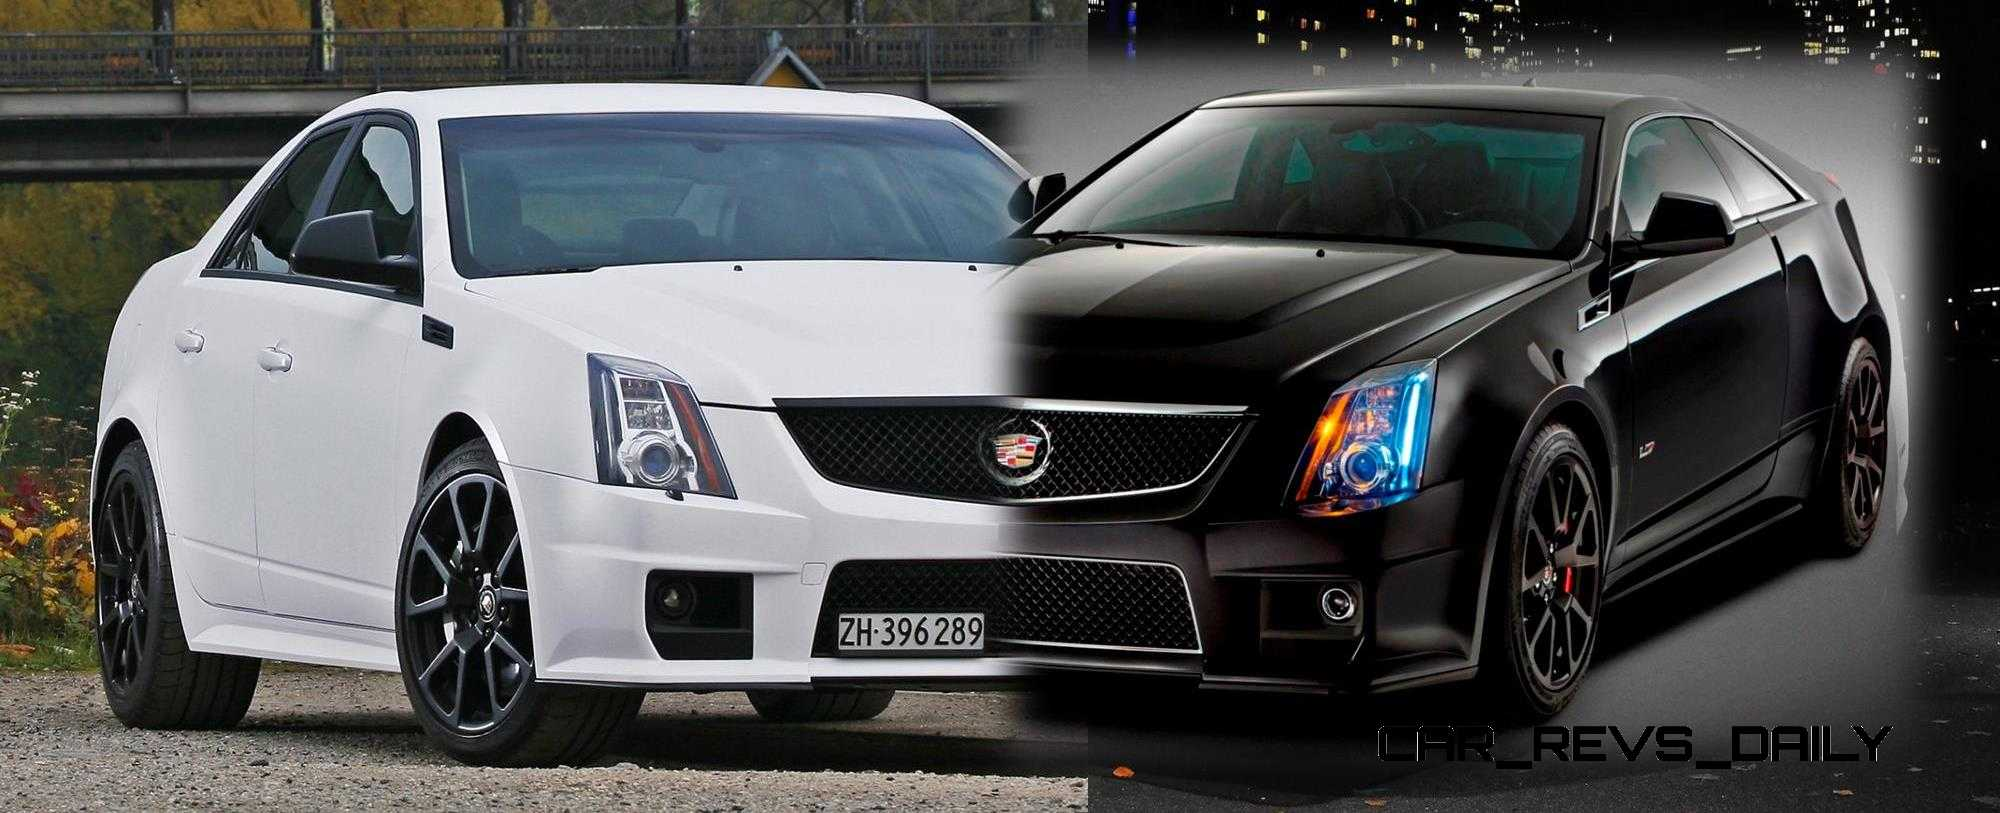 hennessey vehicles performance matte white custom cadillac cts cloud upgrade v